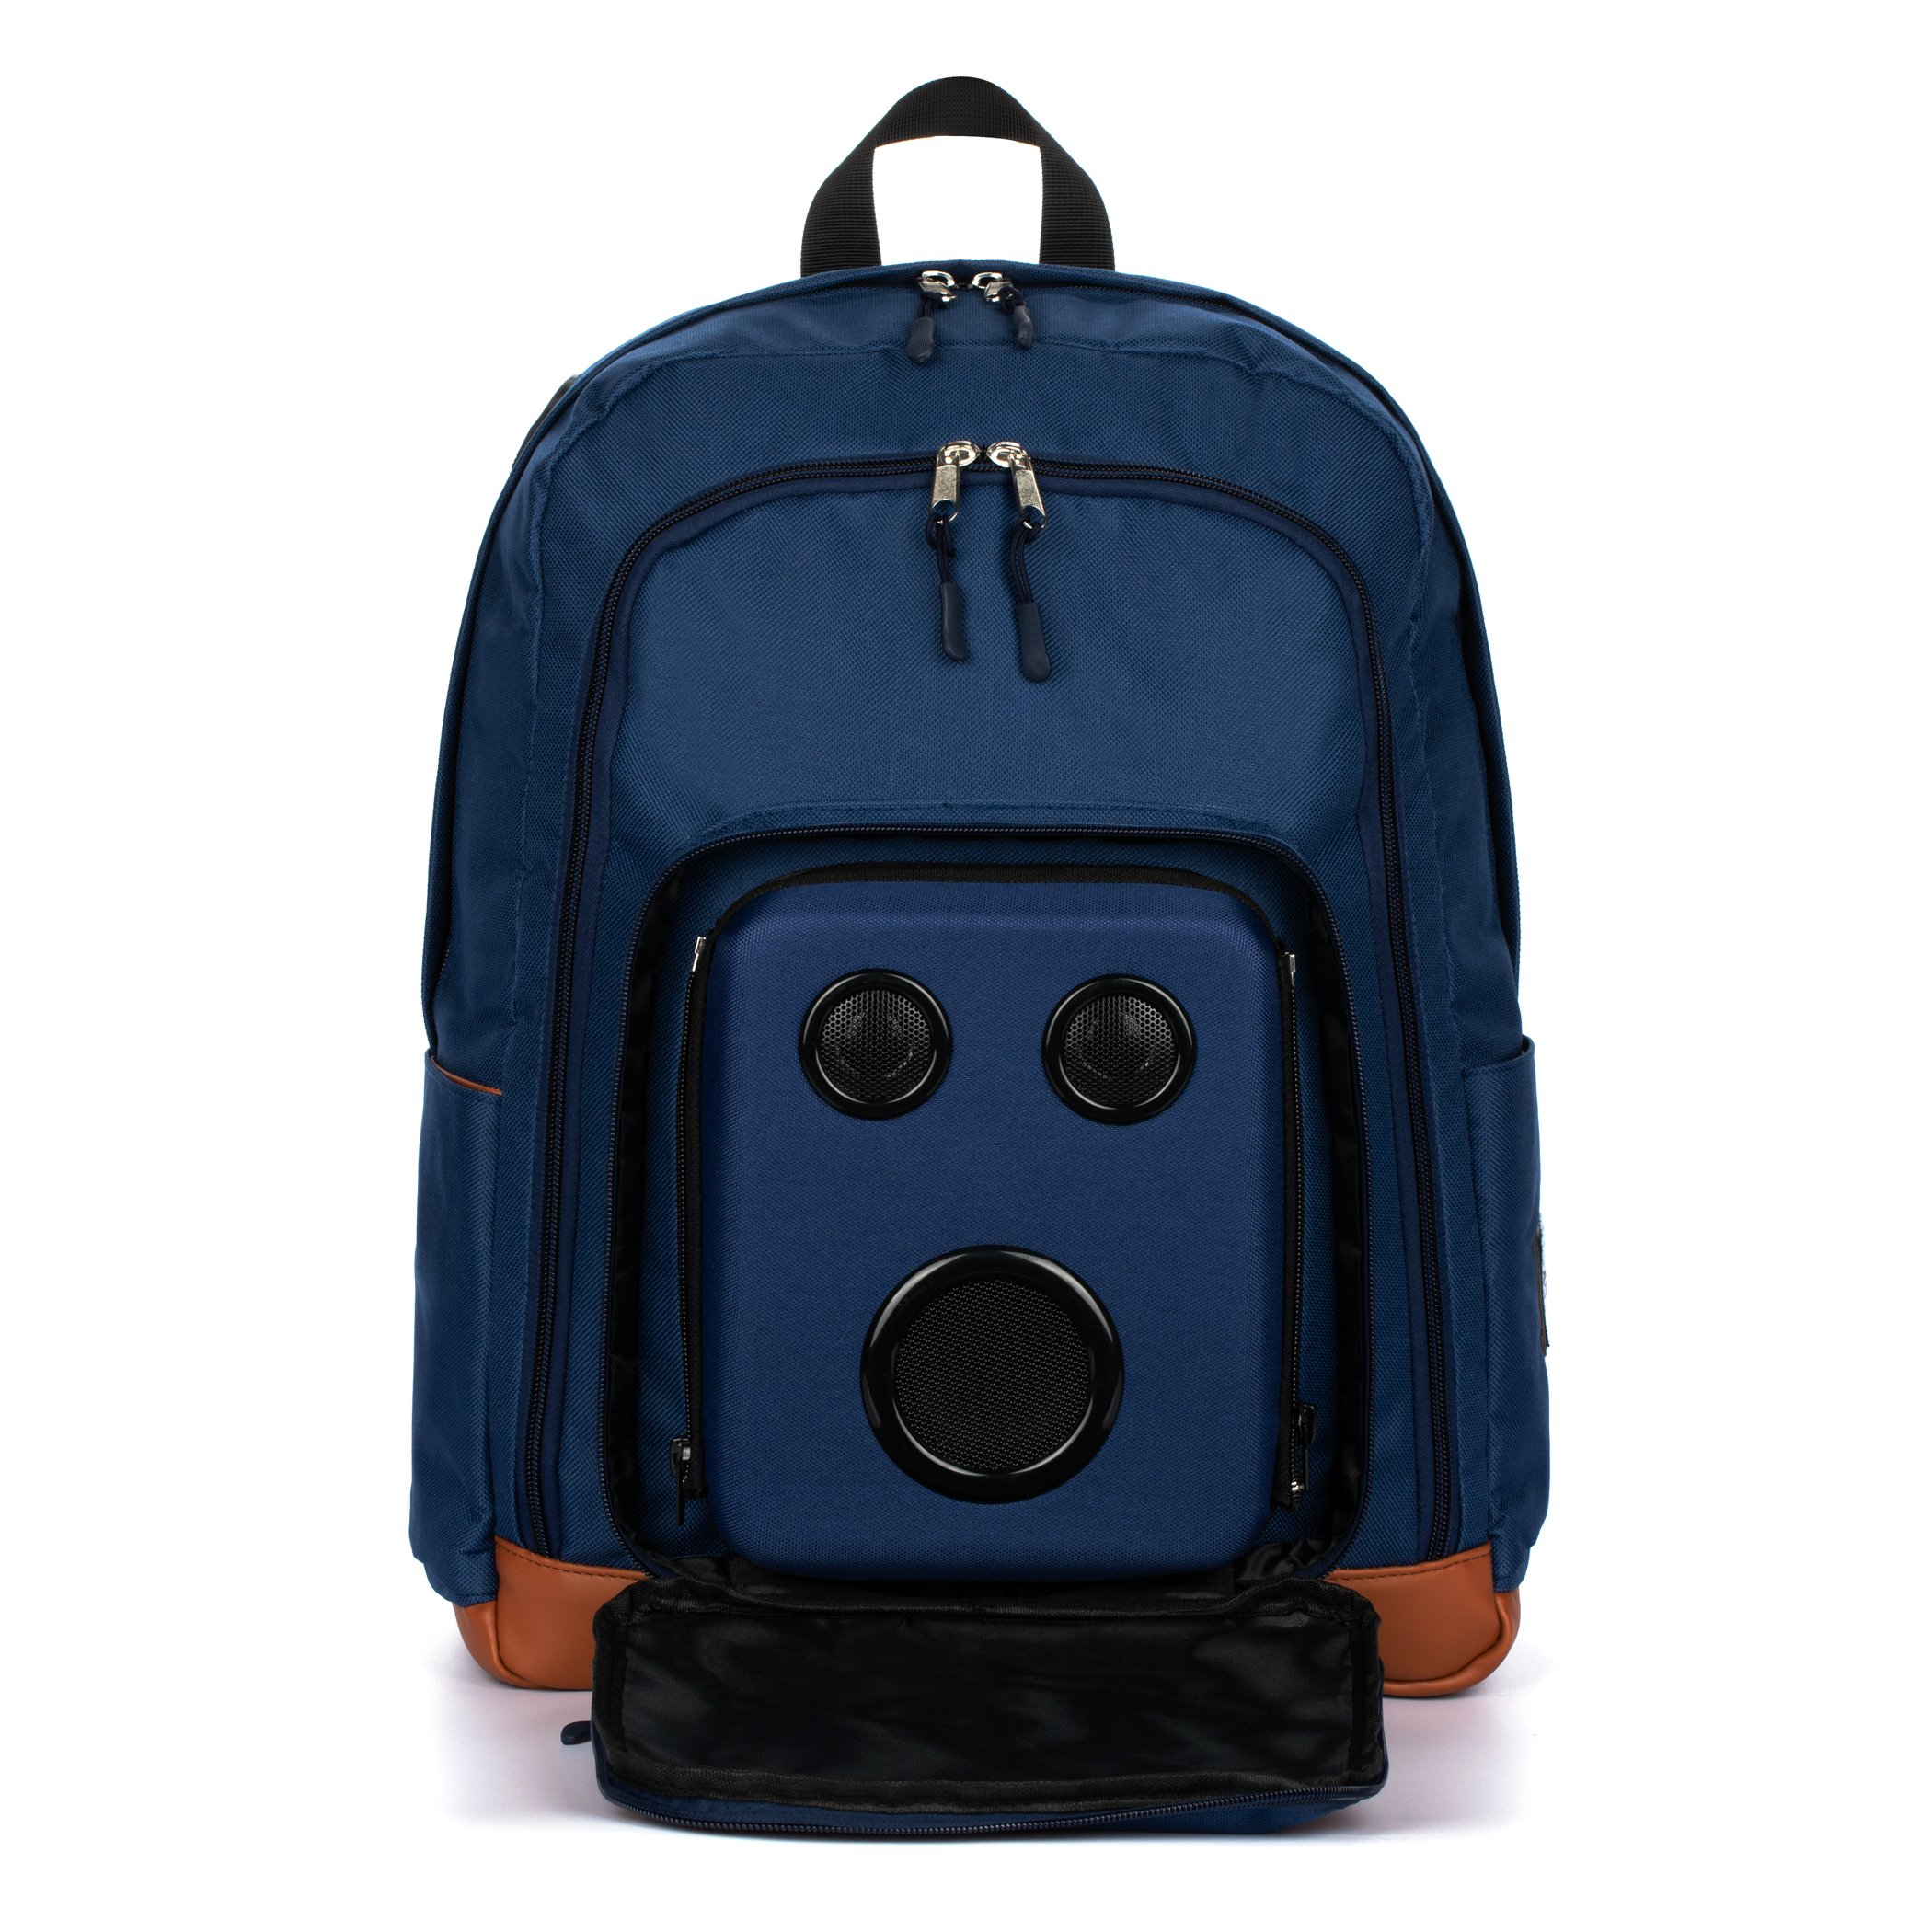 Super Real Business Bluetooth Speaker Backpack With 15-Watt Speakers & Subwoofer for Parties/Festivals/Beach/School. Rechargeable, Works with iPhone & Android (Blue, 2018 Premium Edition)